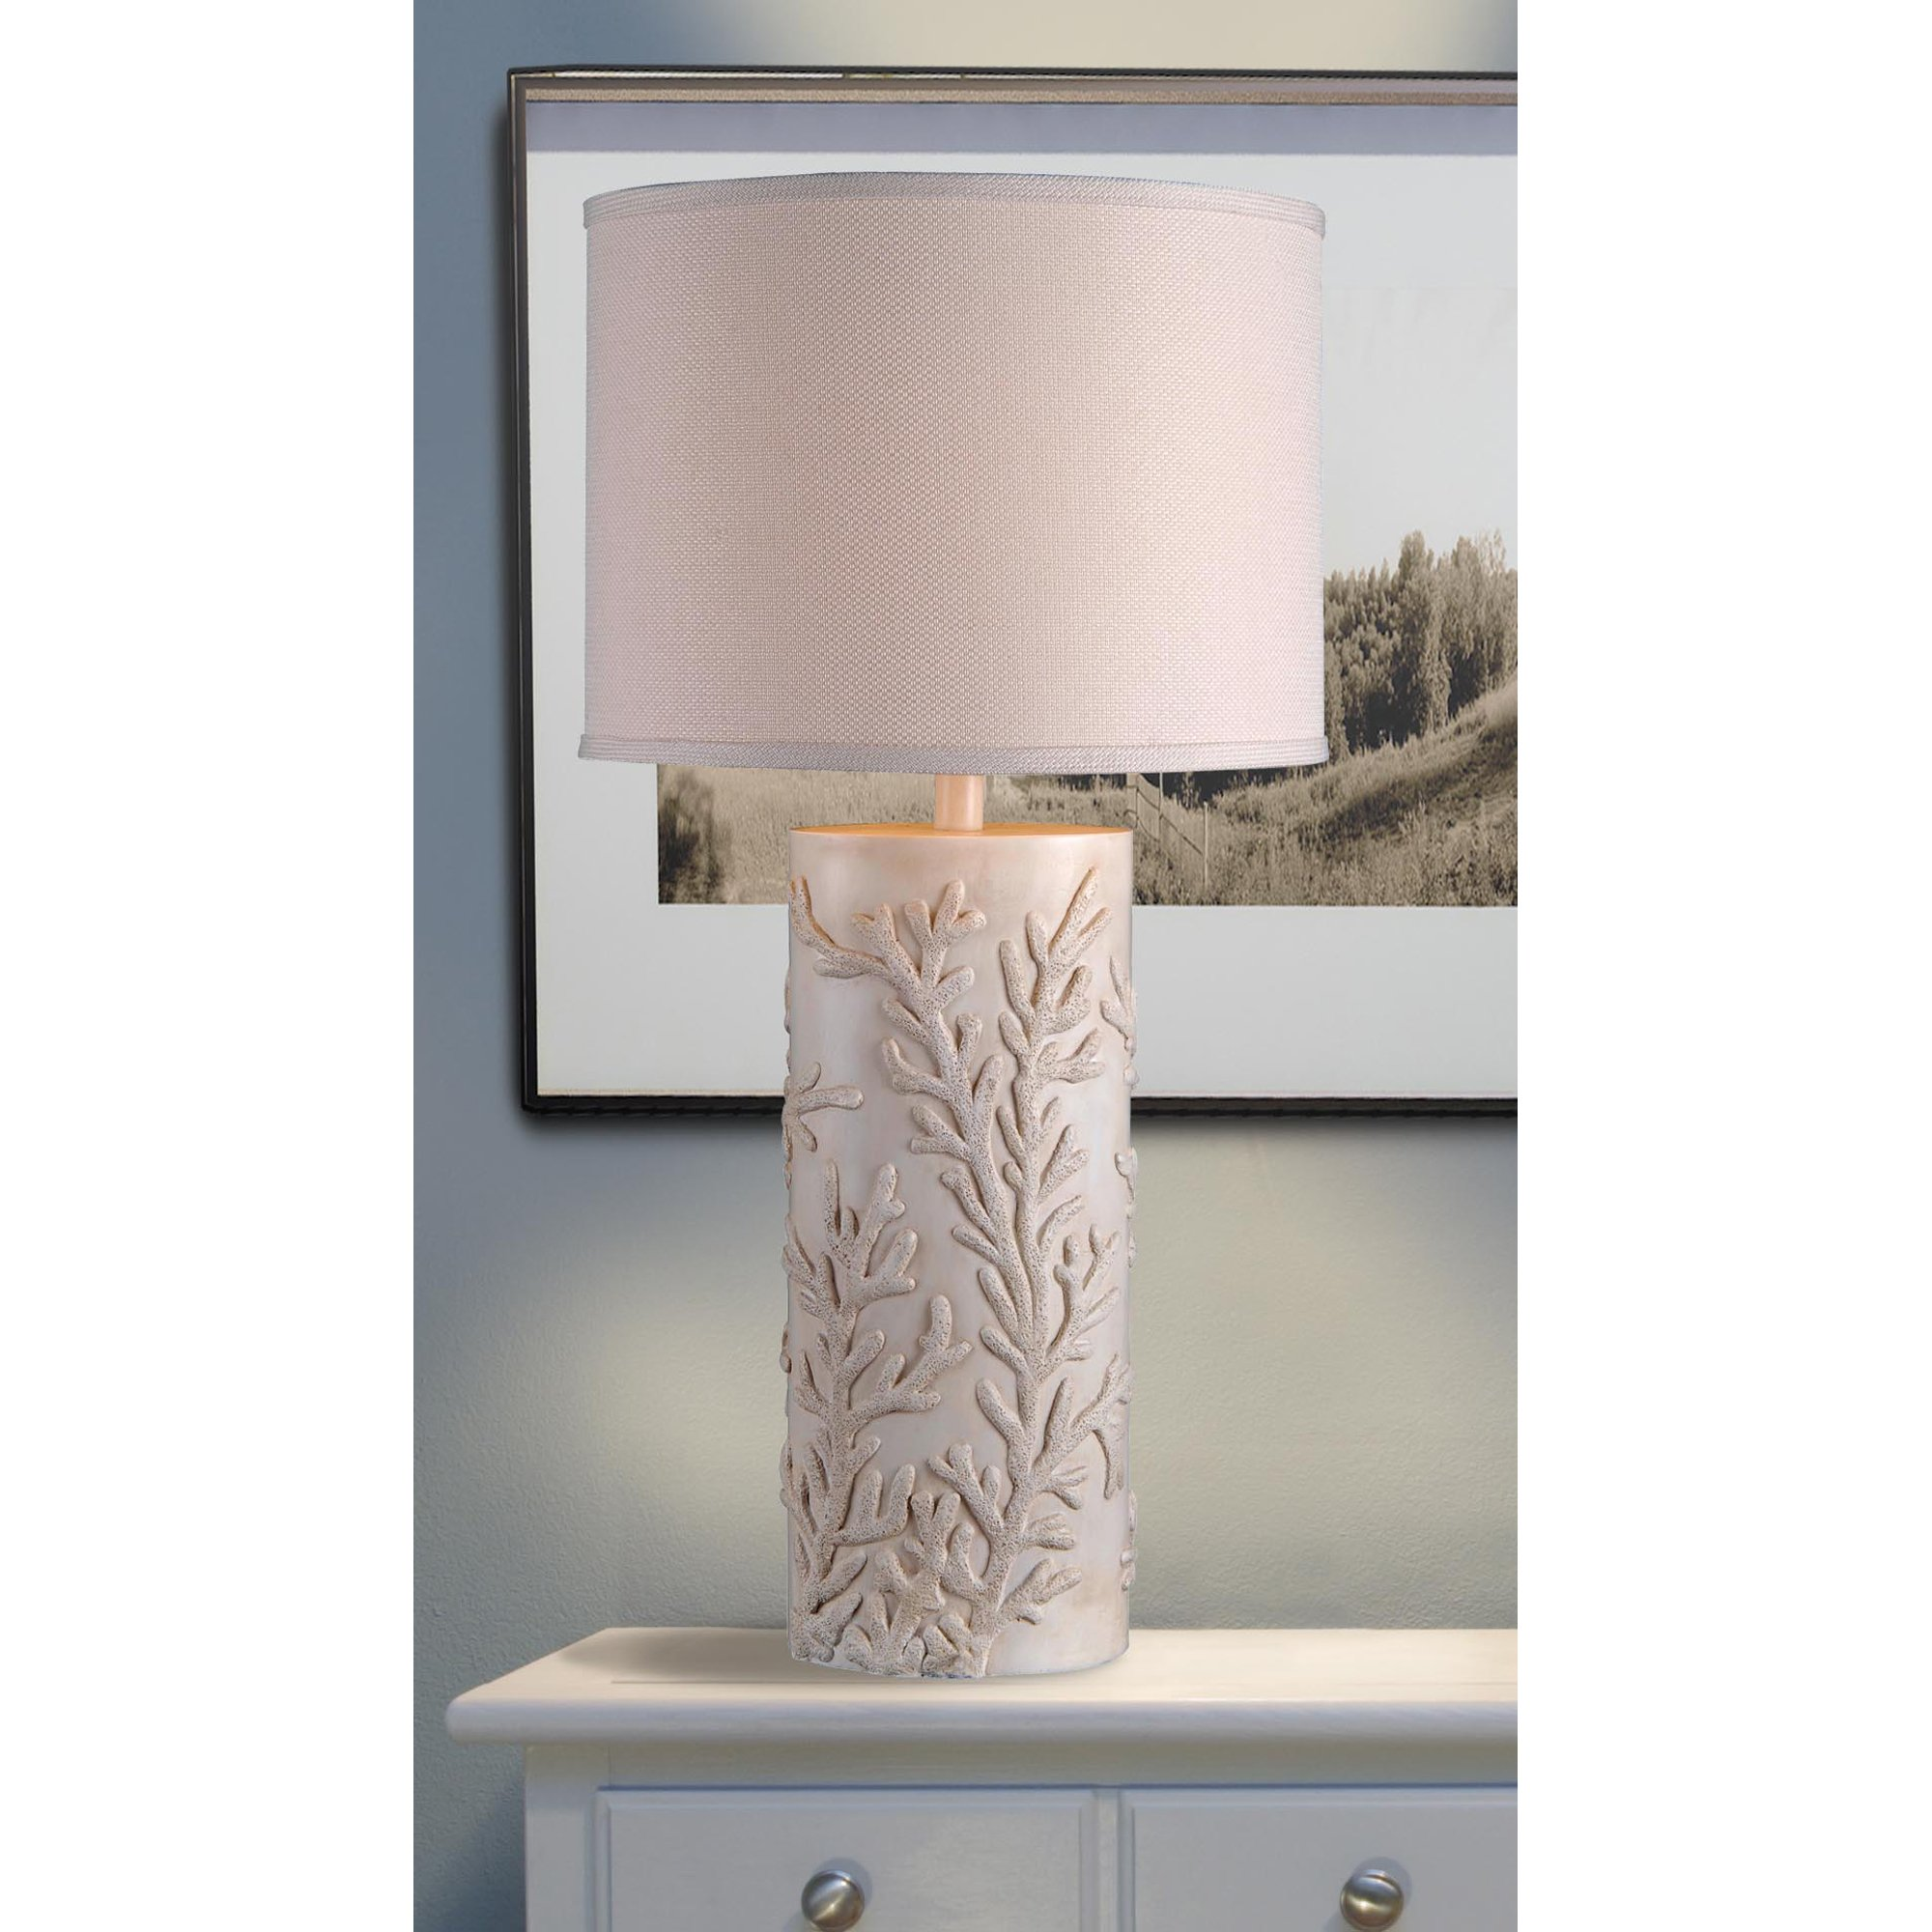 Kenroy Home 32267AWH Reef Table Lamp, Antique White Finish by Kenroy Home (Image #2)